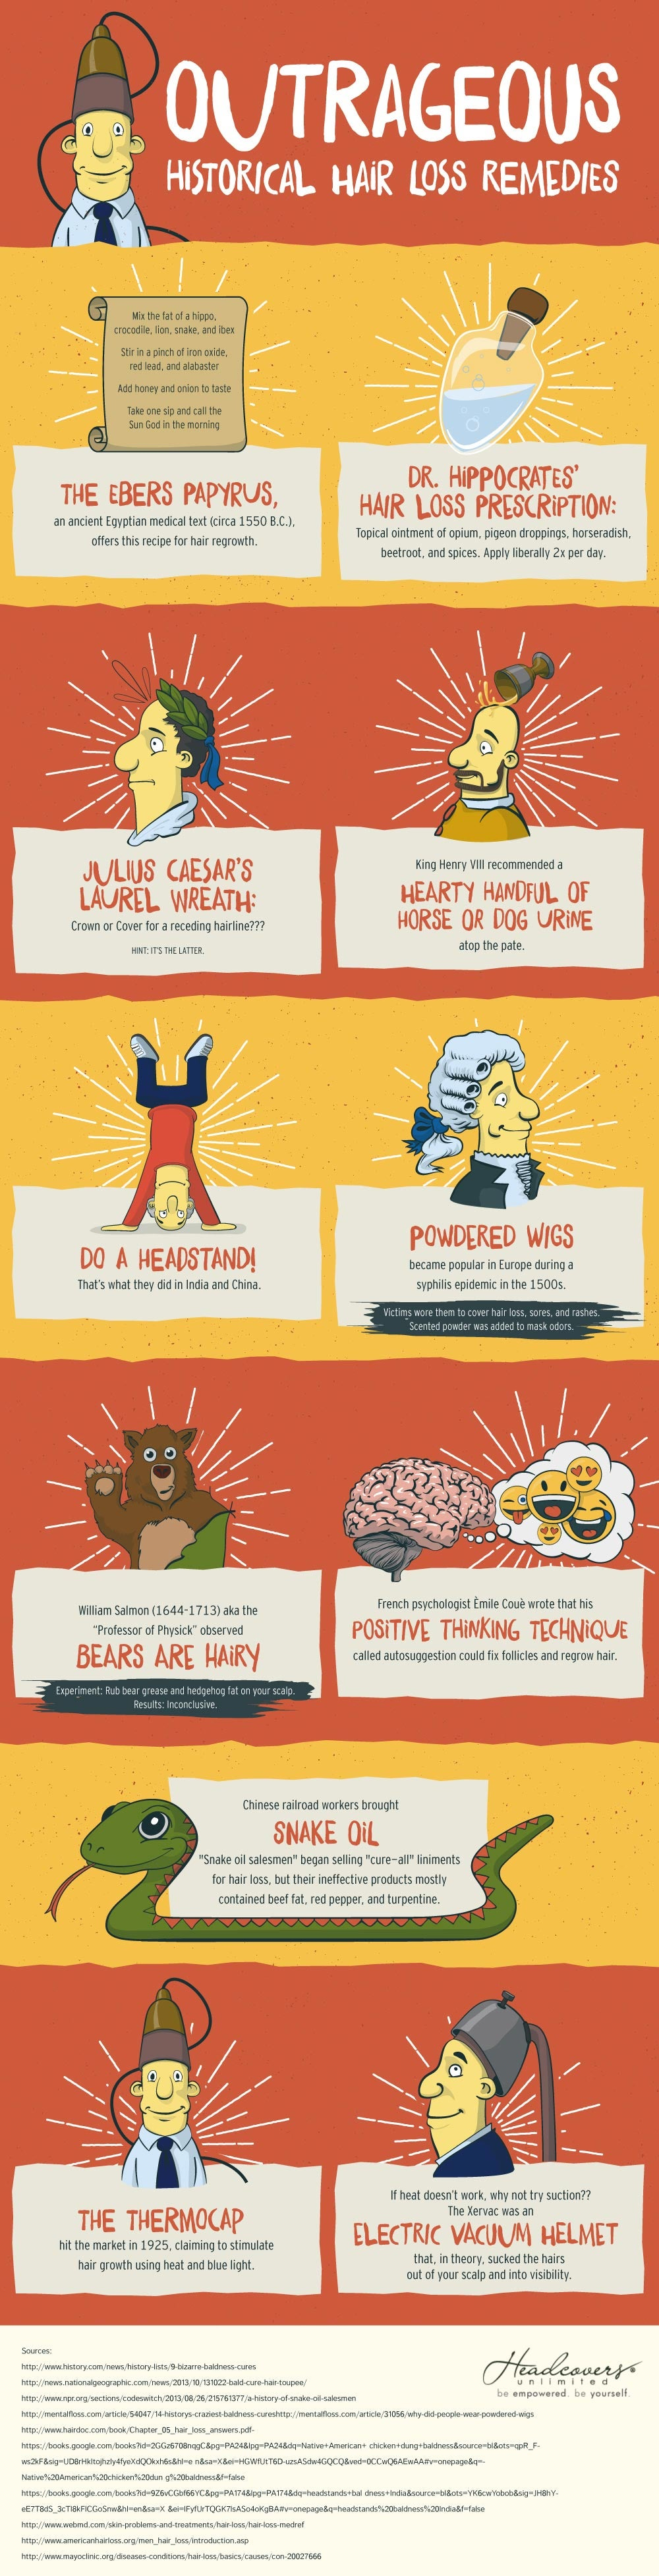 outrageous-historical-hair-loss-remedies-infographic